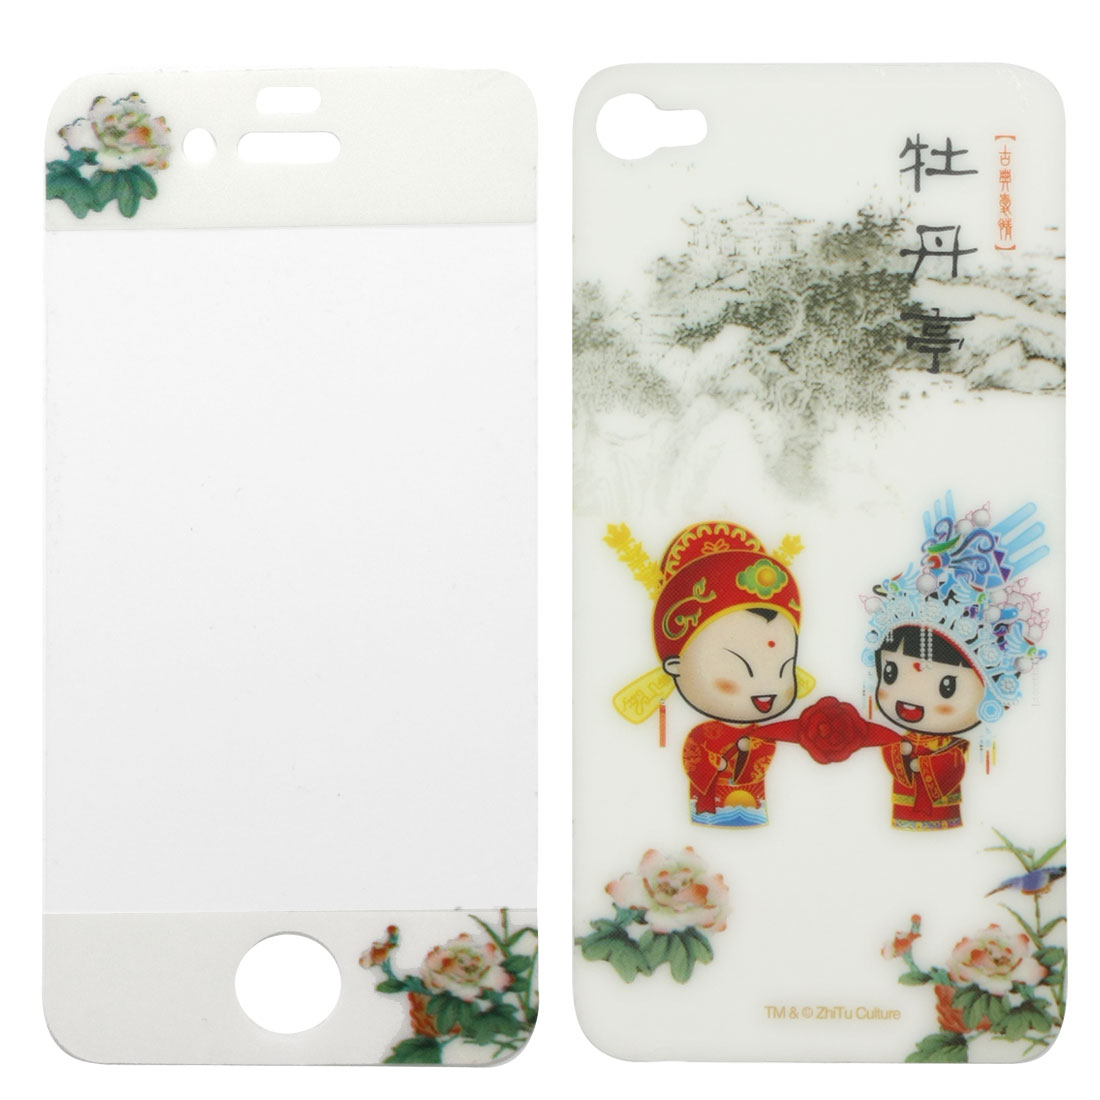 Unique Bargains LCD Screen decoration Front Back Stickers for Apple iPhone 4 4S